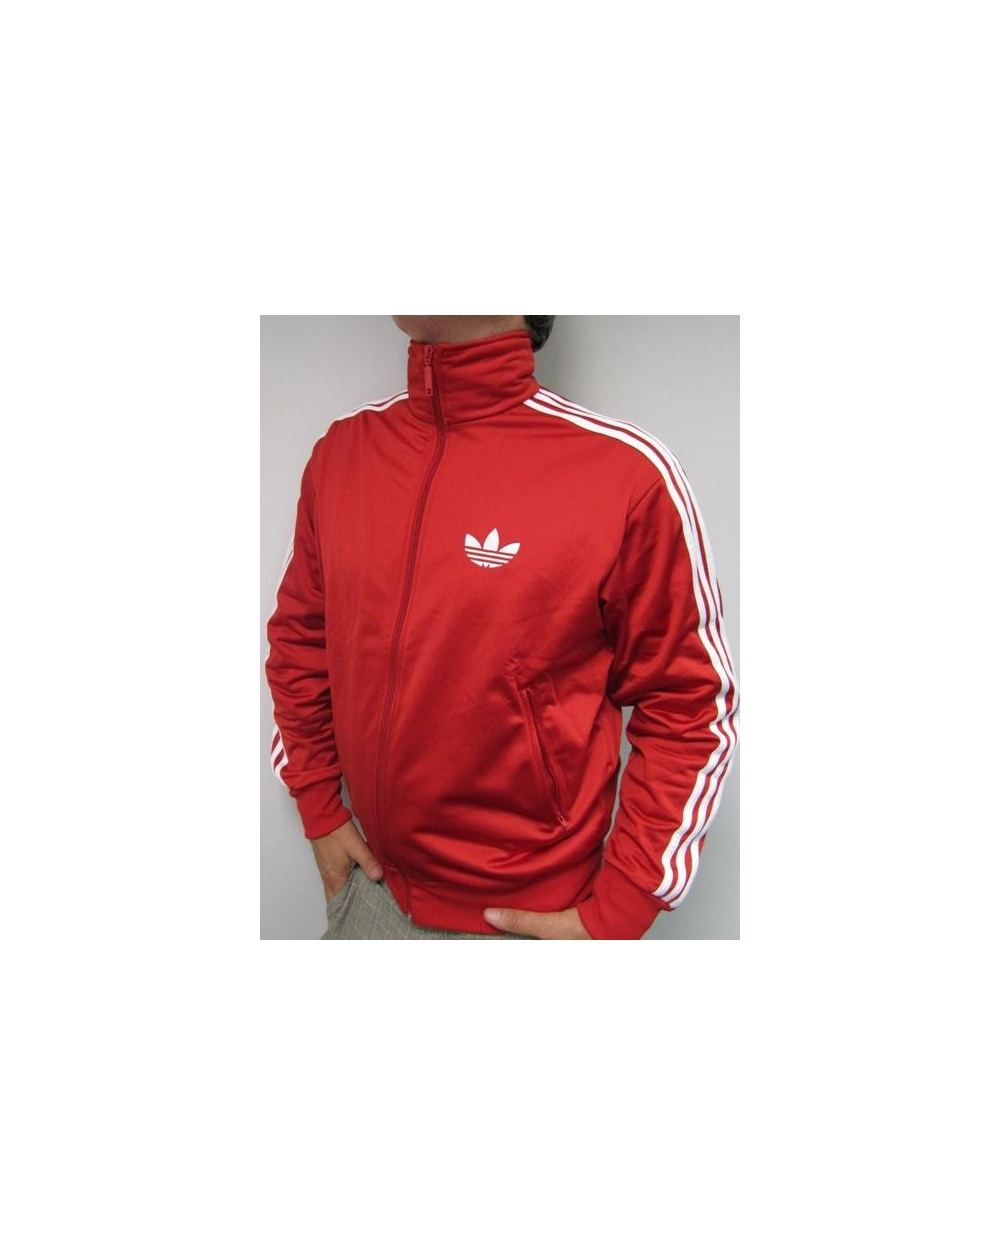 Adidas Originals Firebird Track Top Red Scarlet/white